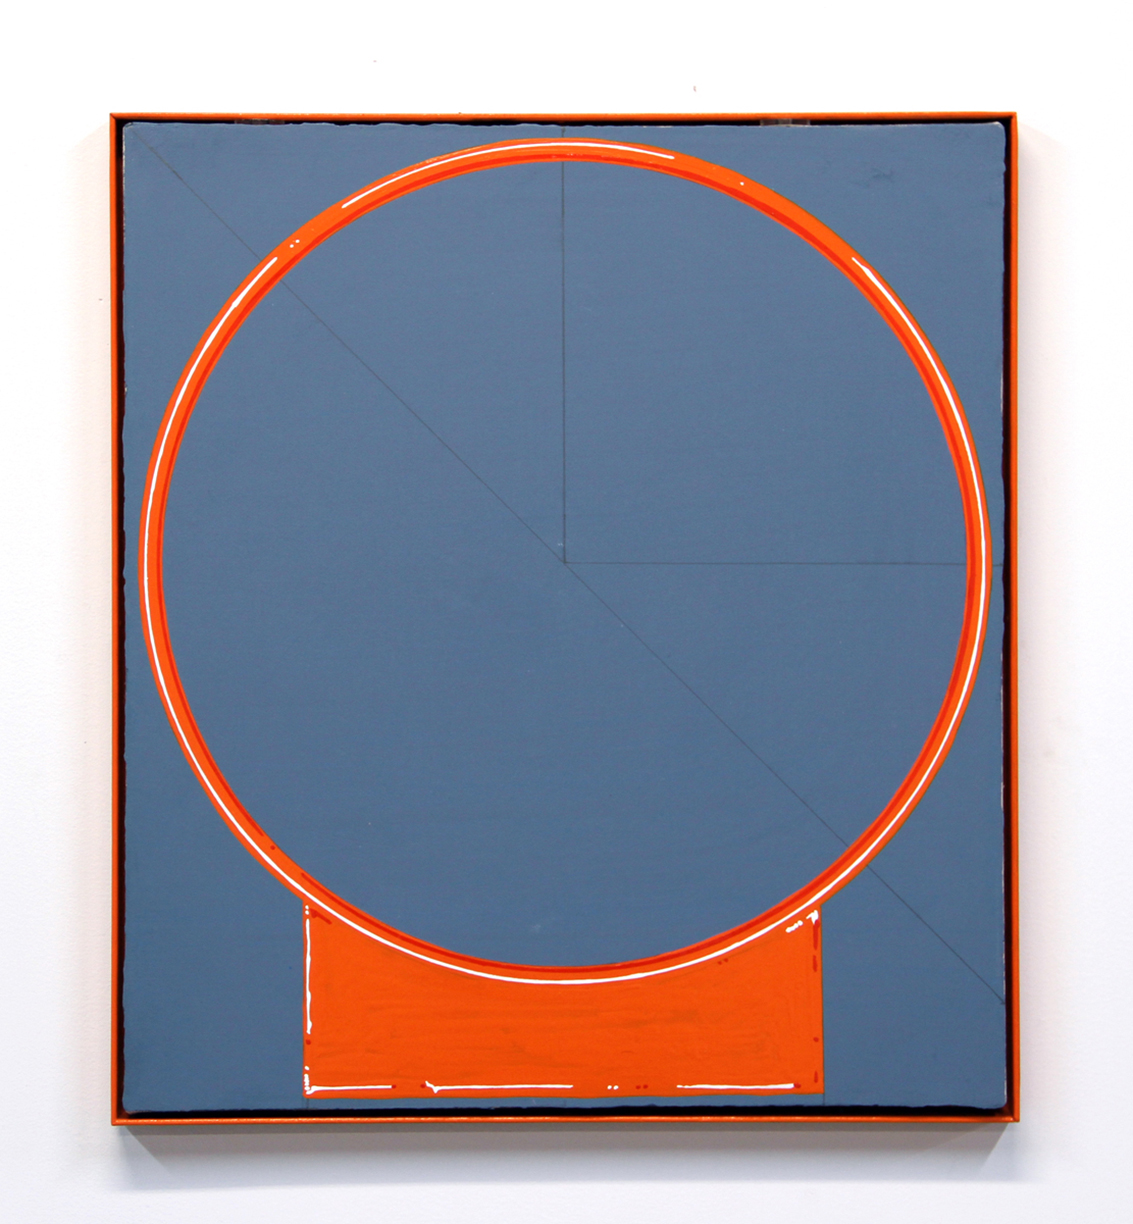 """Boyang Hou, """"Practice Makes Perfect,"""" 2016. Enamel, gesso on canvas, powder-coated steel, 19.5 x 17.5 inches"""